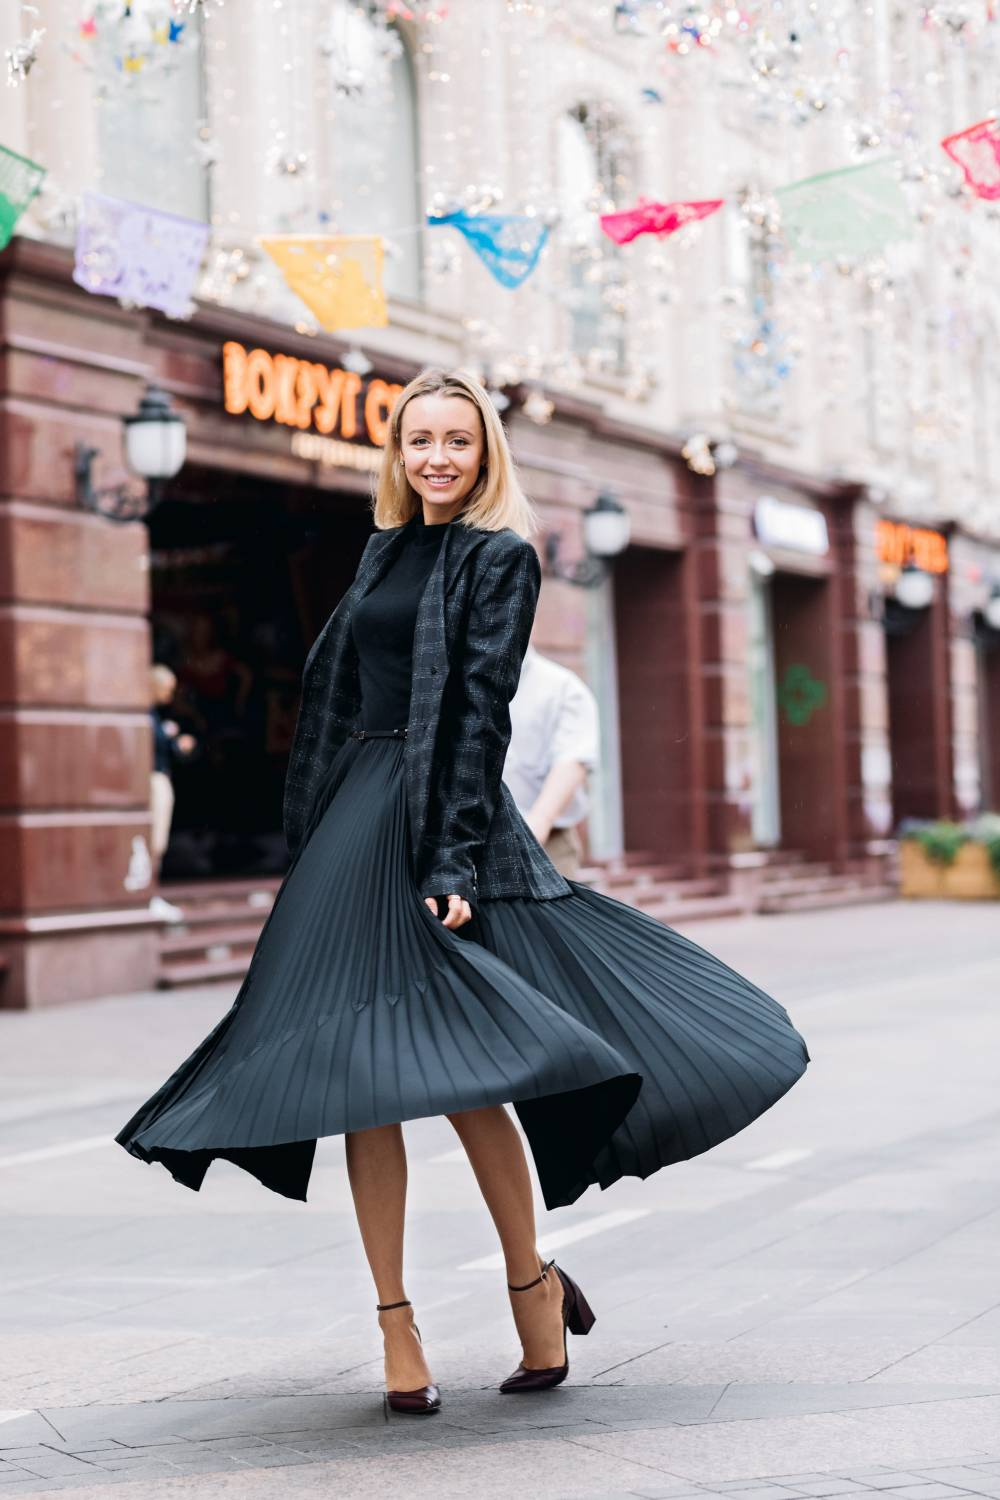 evening wear outfit style for work